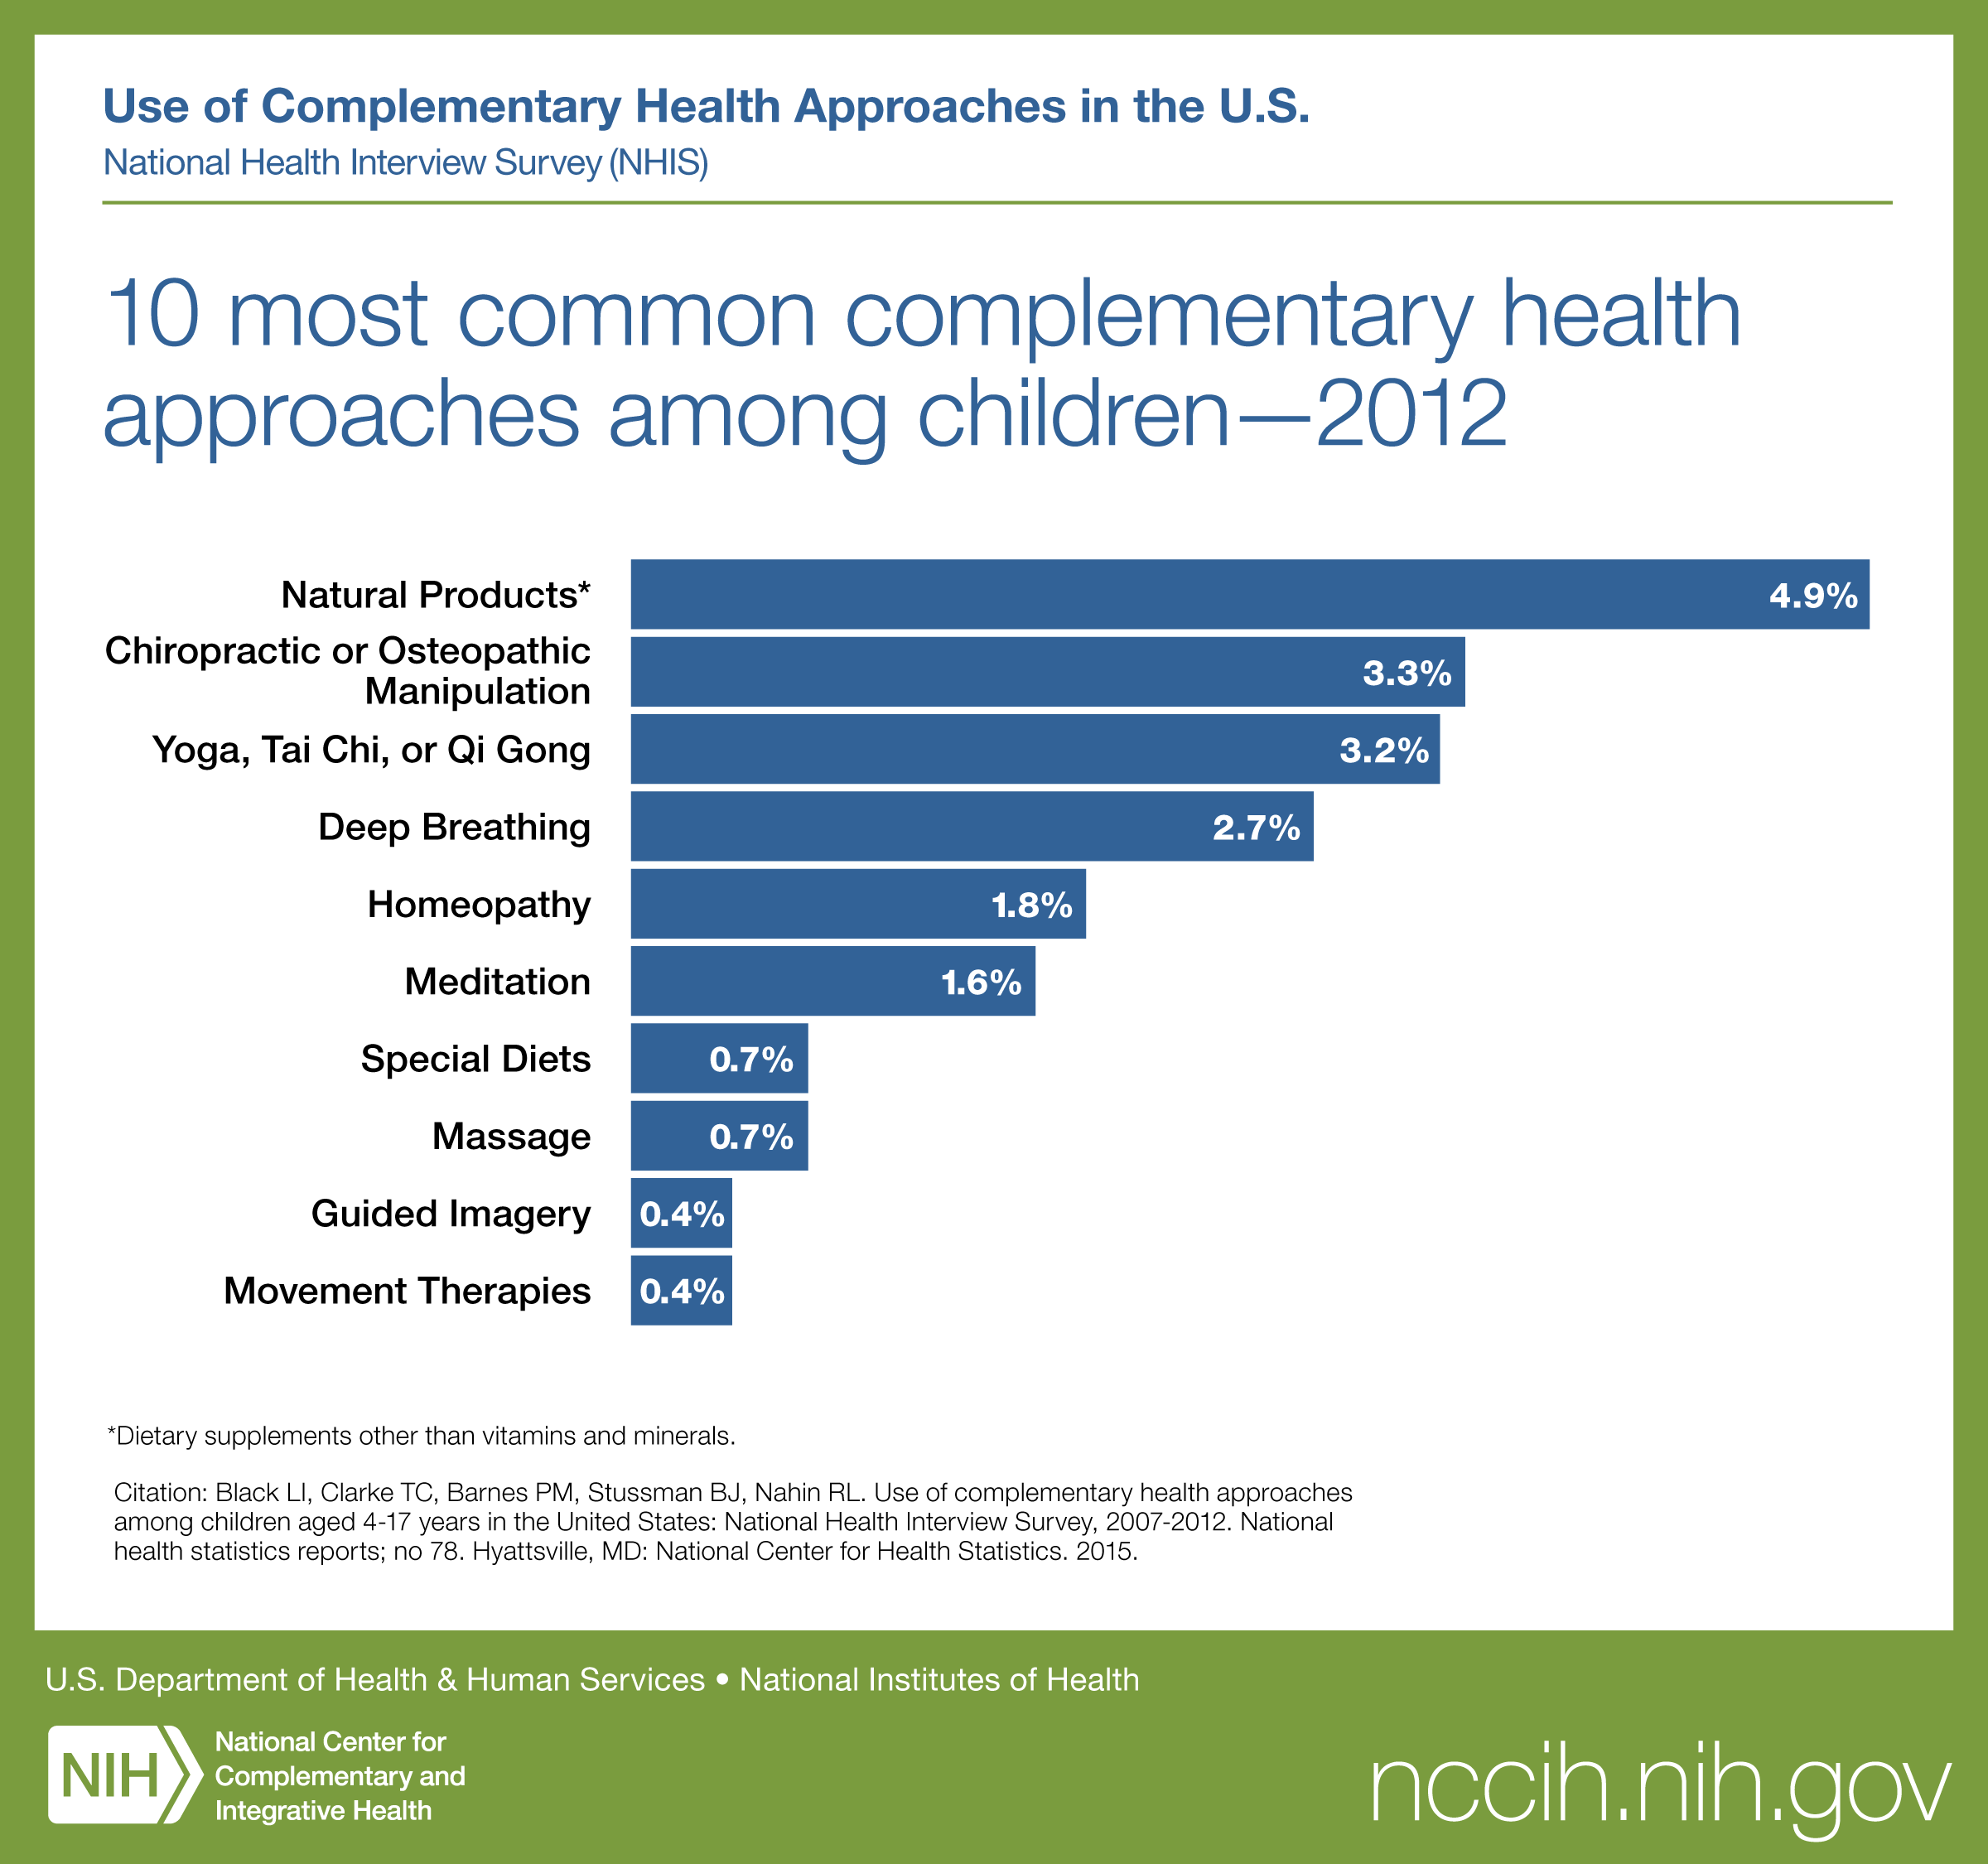 10 Most Common Complementary Health Approaches Among Children-2012